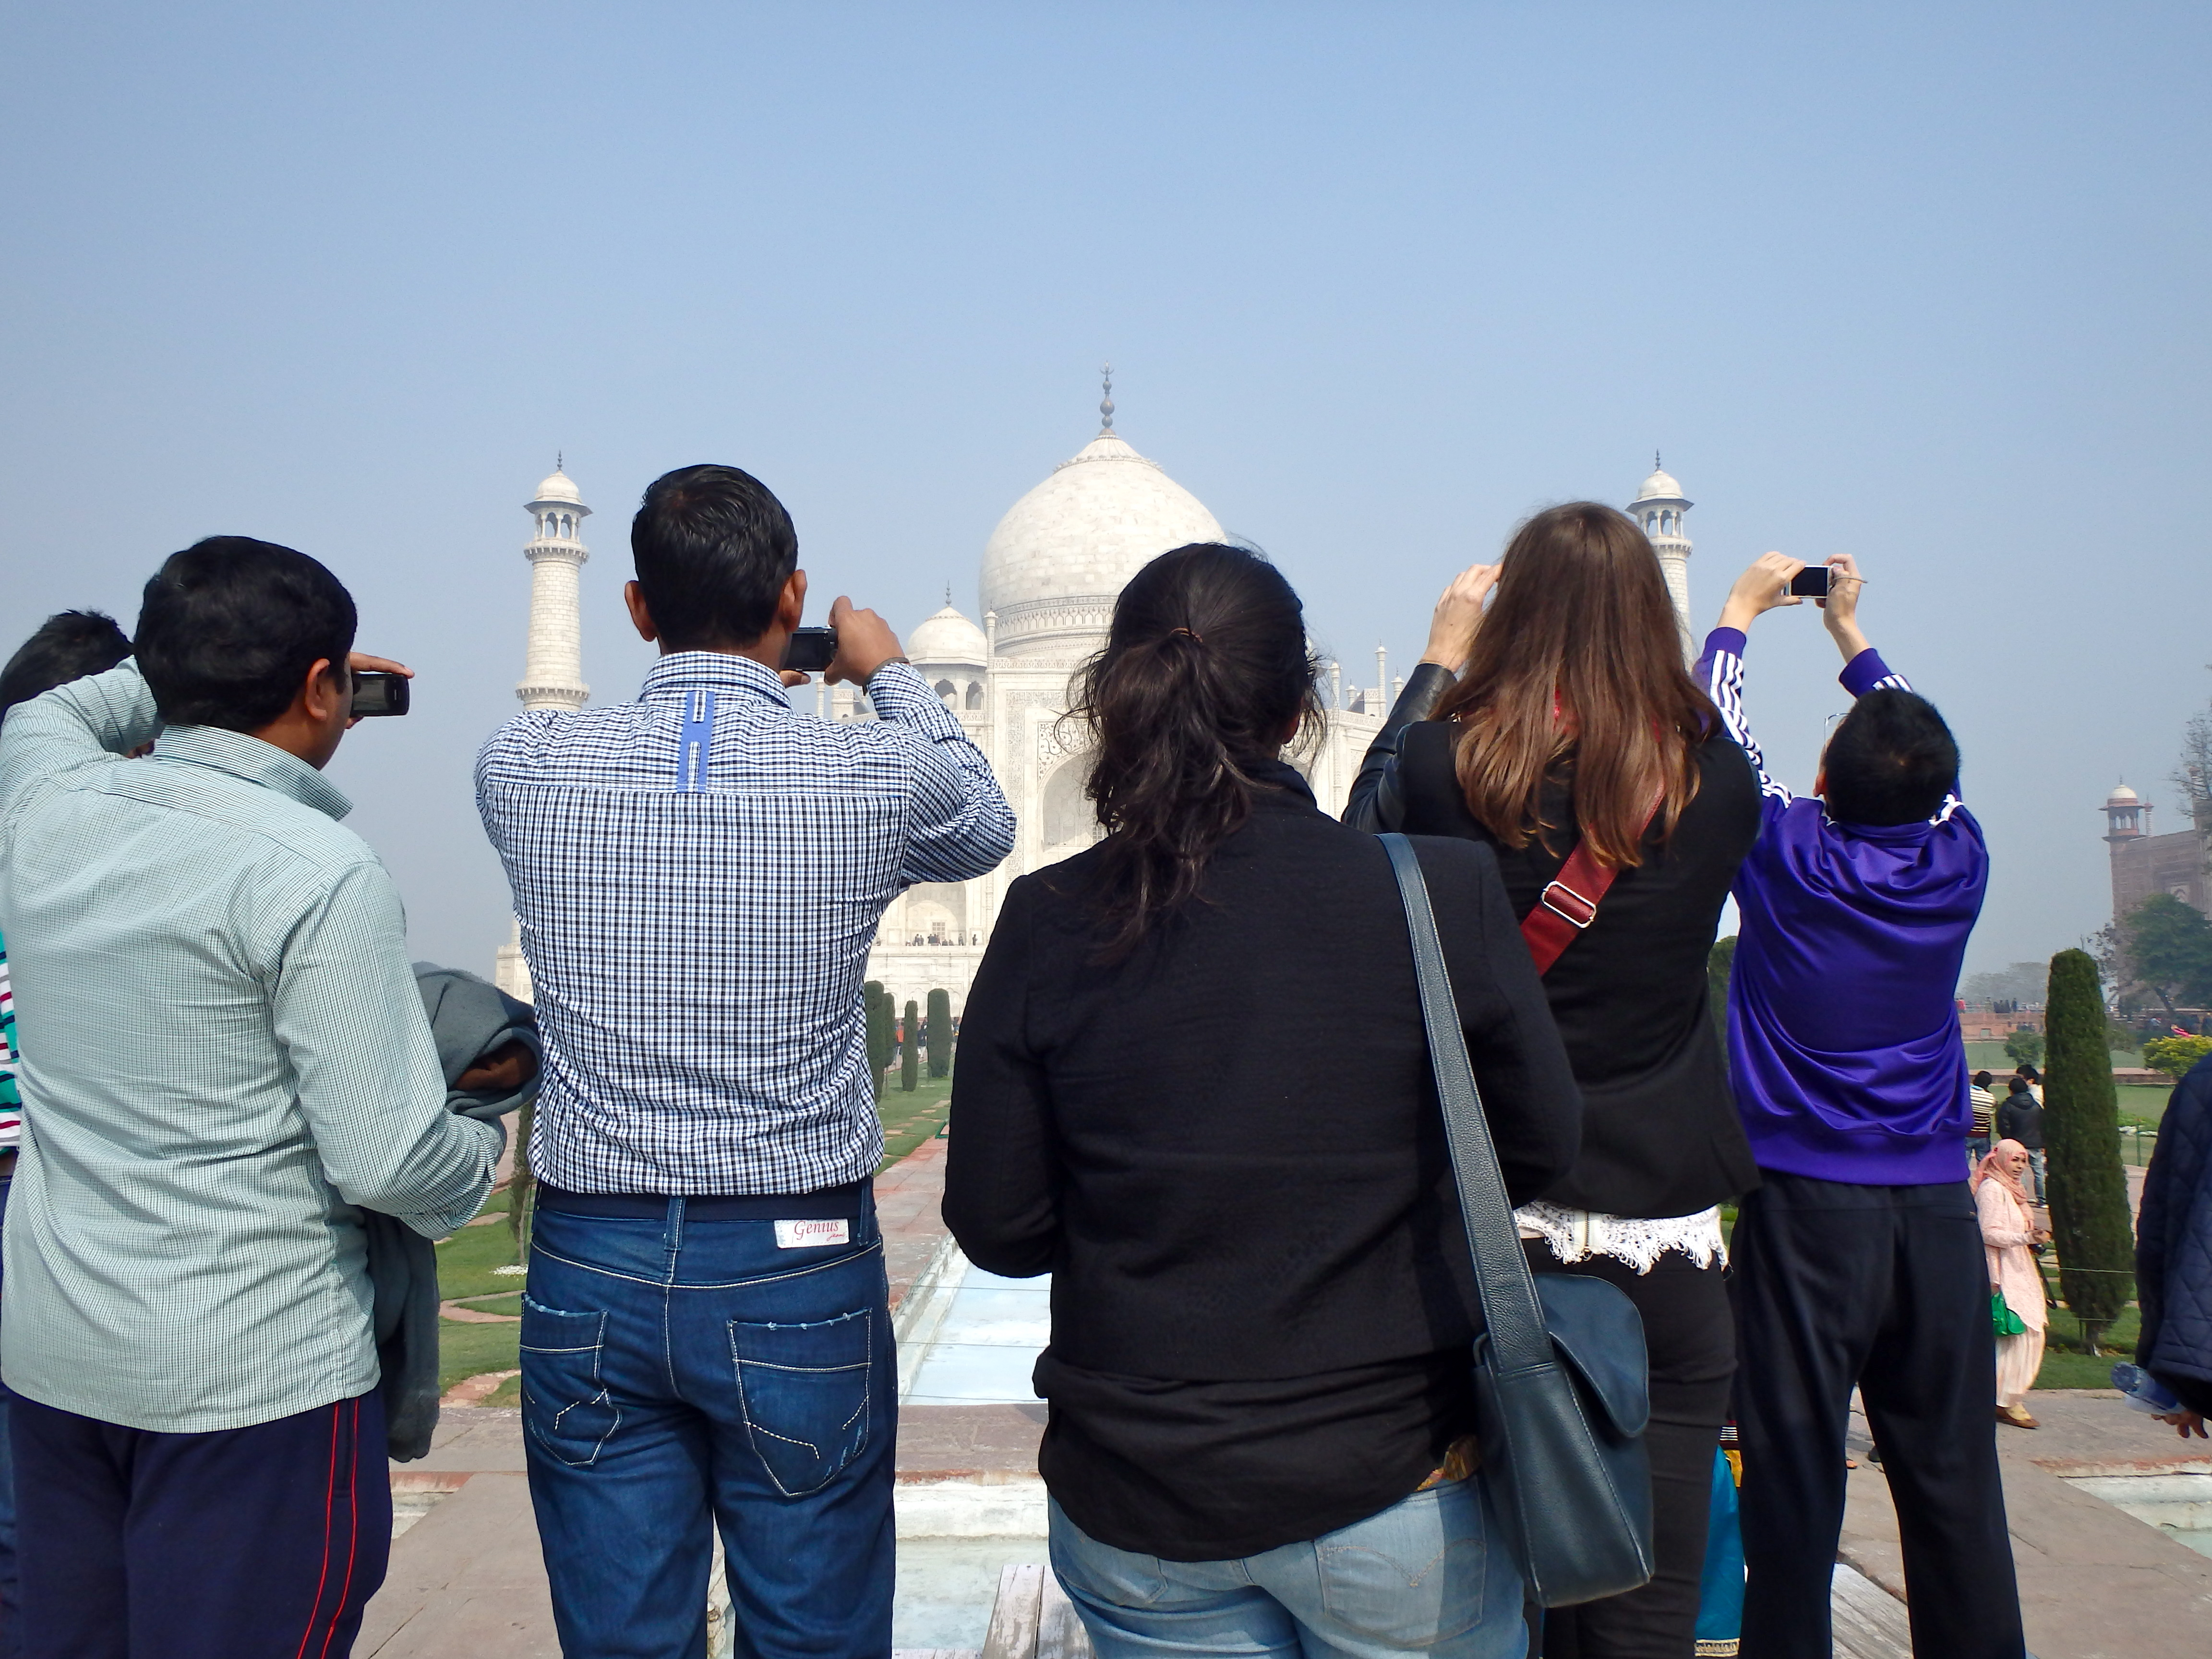 Are there monkeys at the Taj mahal travel blog best places to see the taj mahal where to photograph the taj mahal